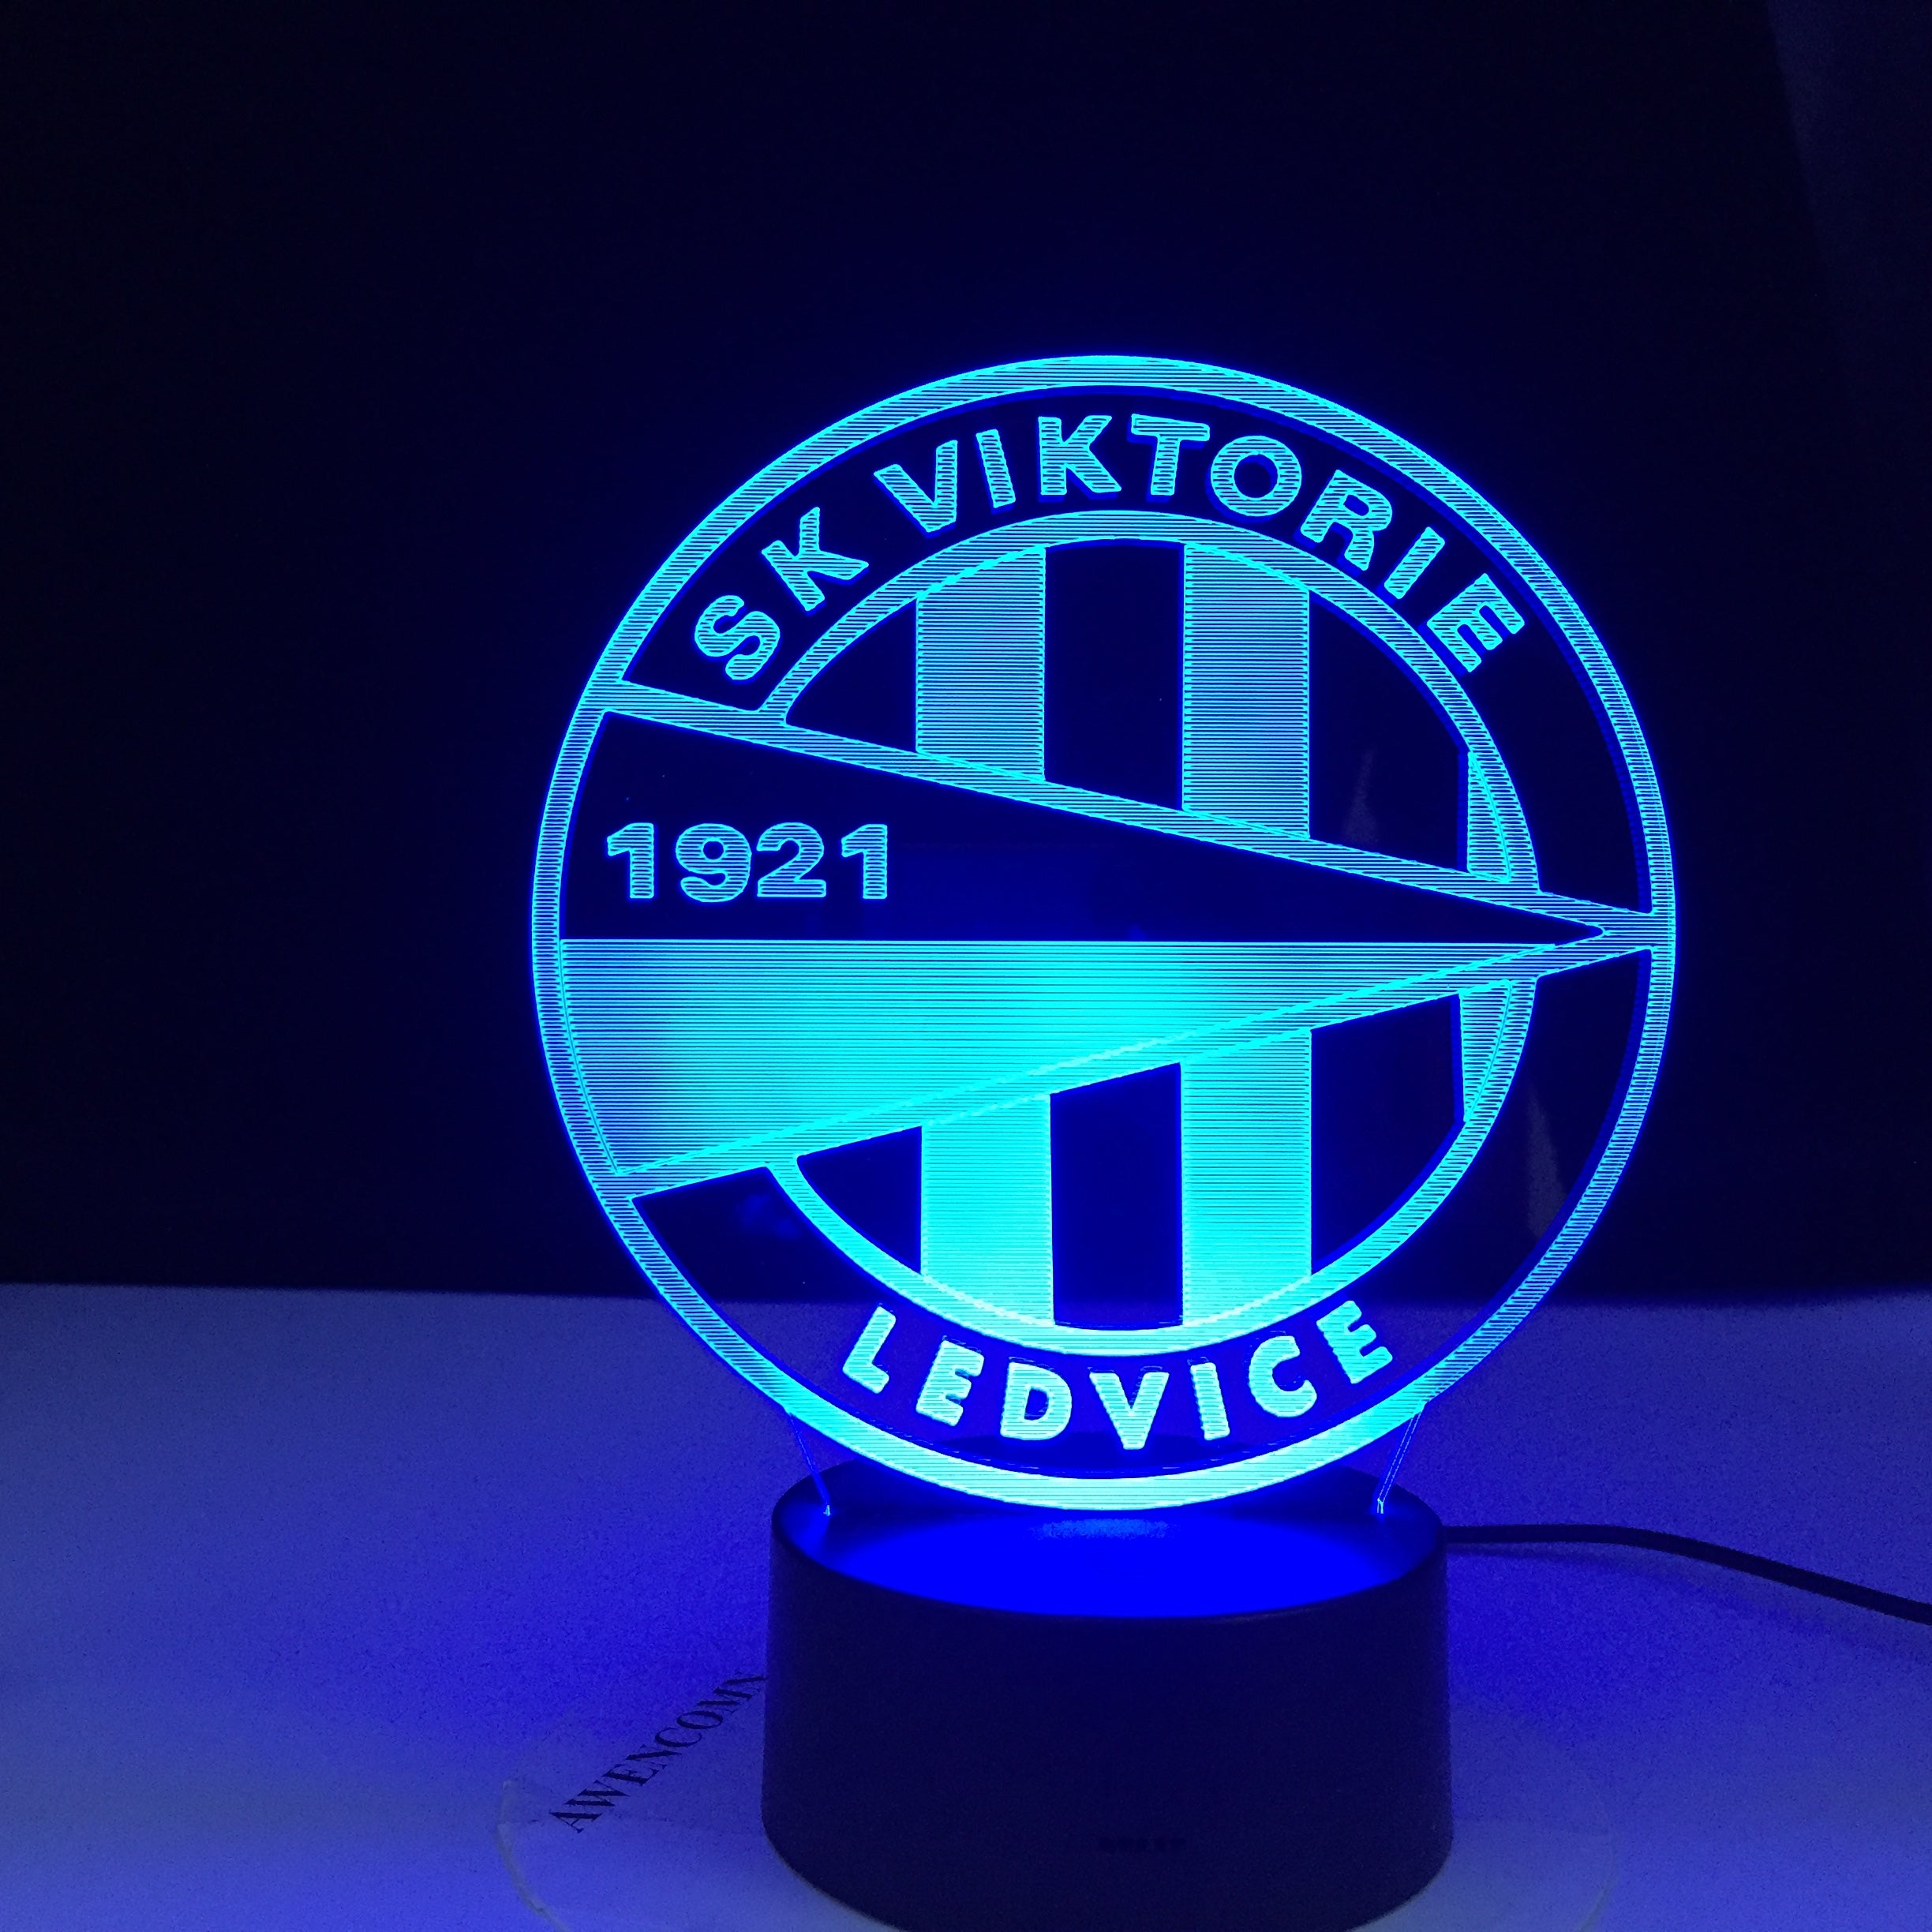 SK Viktorie 1921 LEDVICE Soccer Club Led Night Light 3d Illusion Colors Changing Nightlight for Home Decoration Bedside Lamp